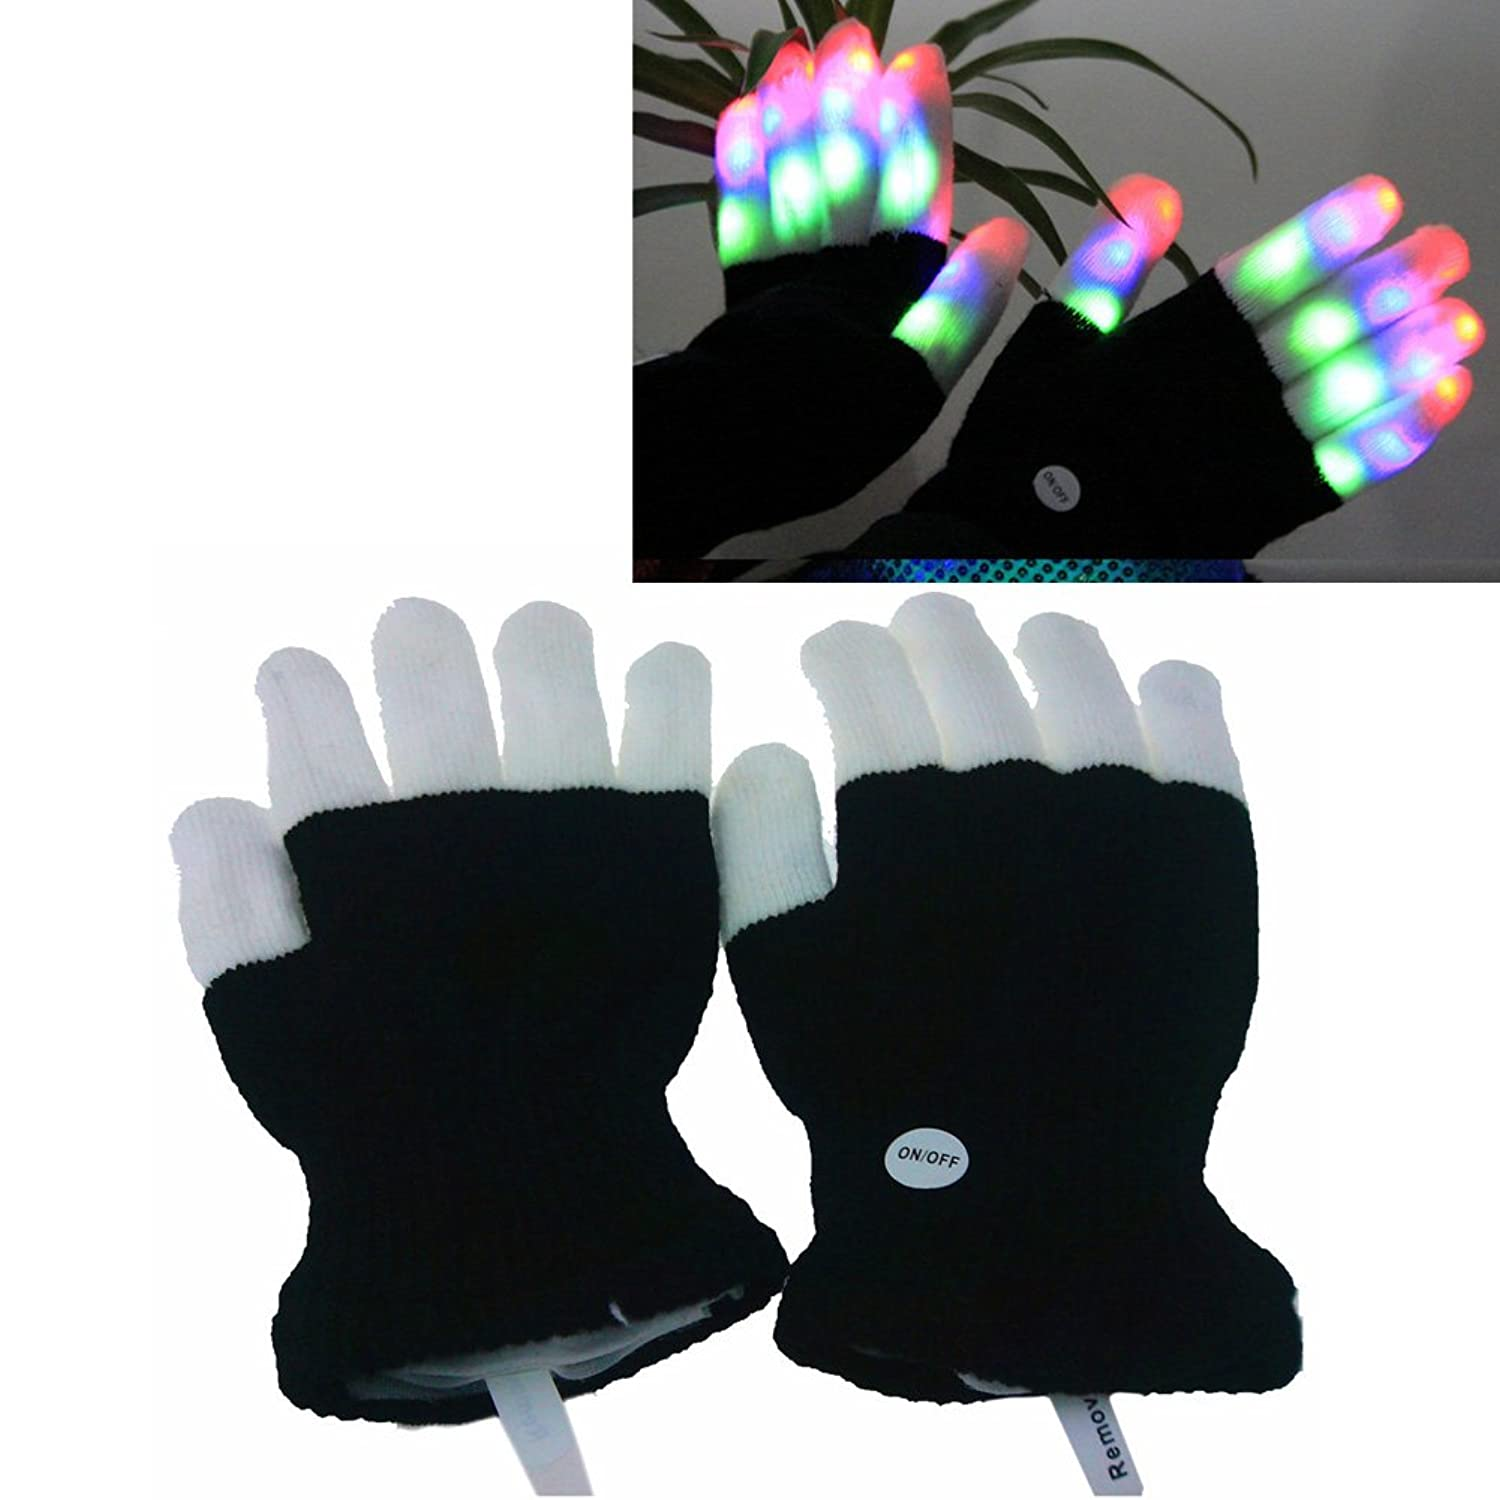 Mens novelty gloves -